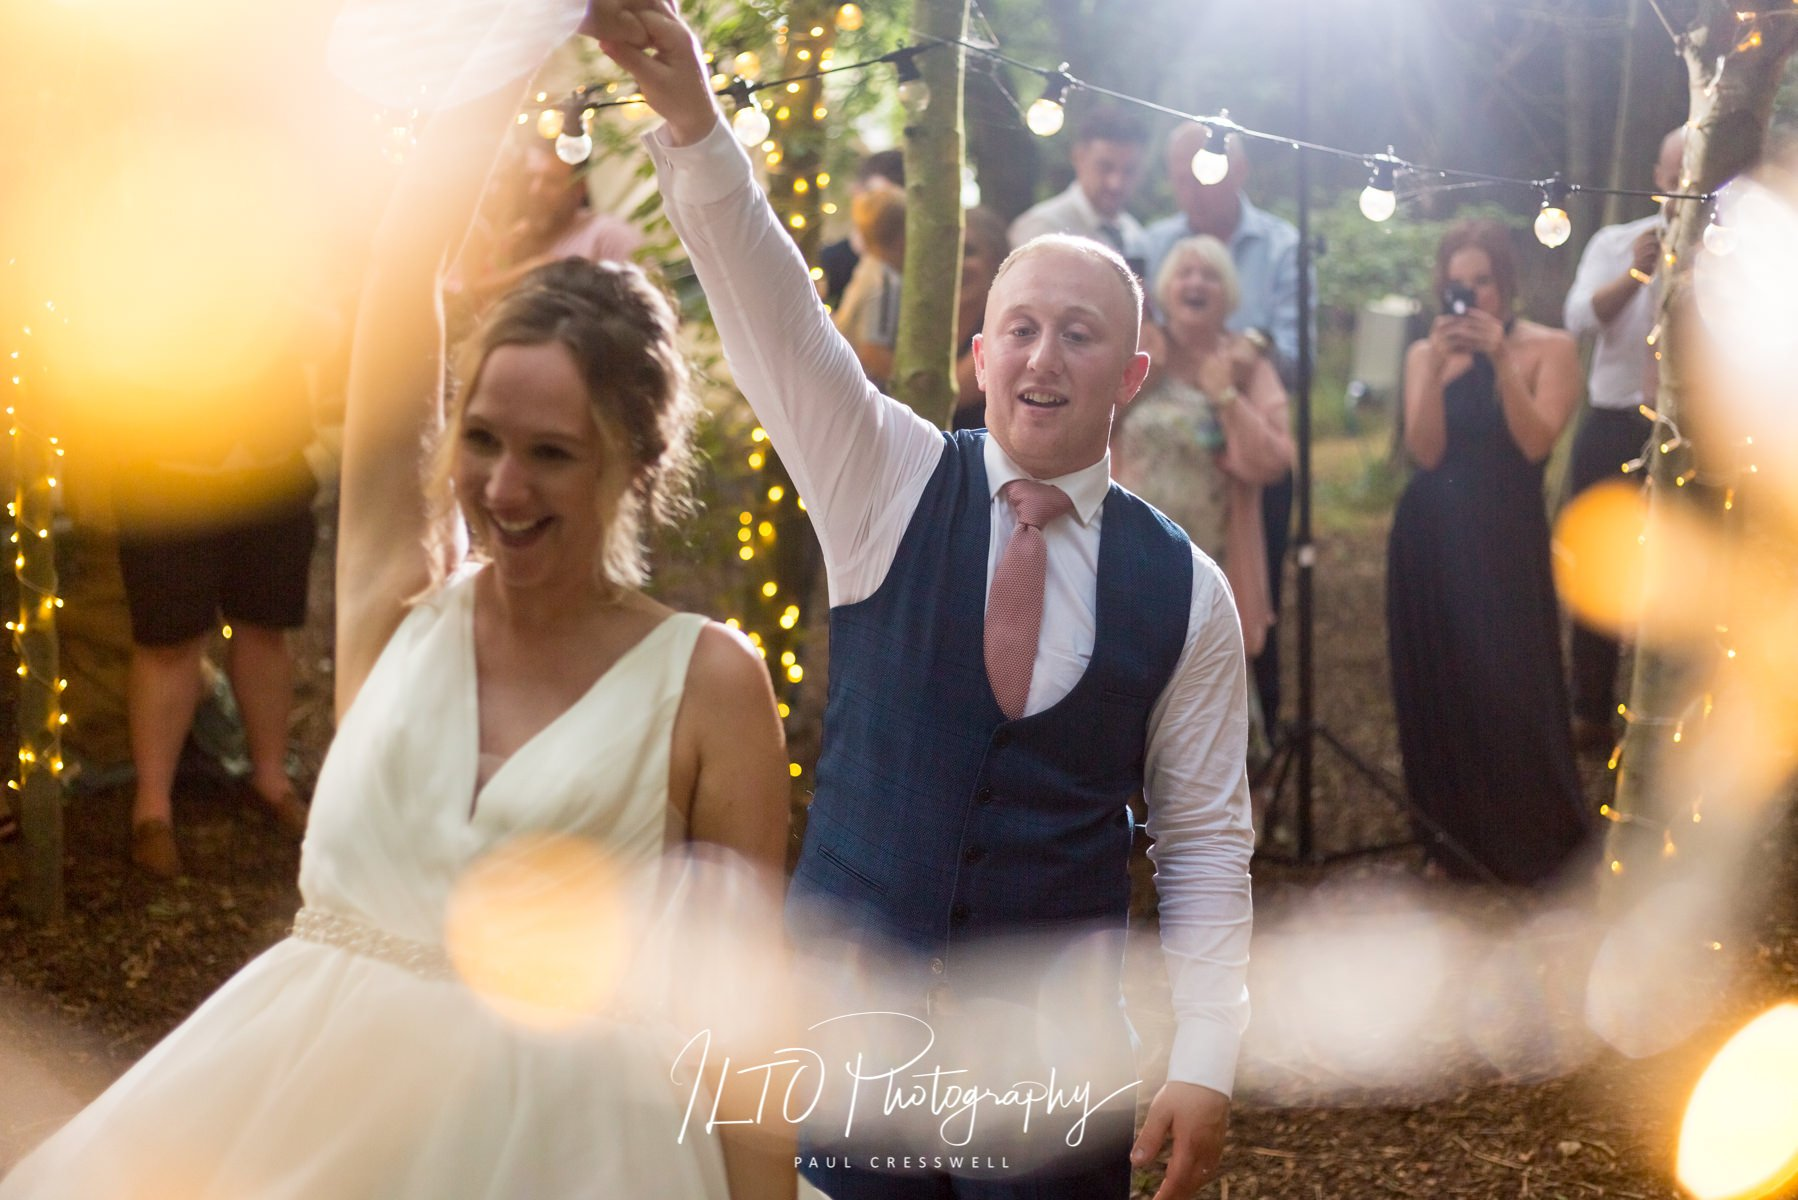 First dance wedding photography Yorkshire ILTO Photographer